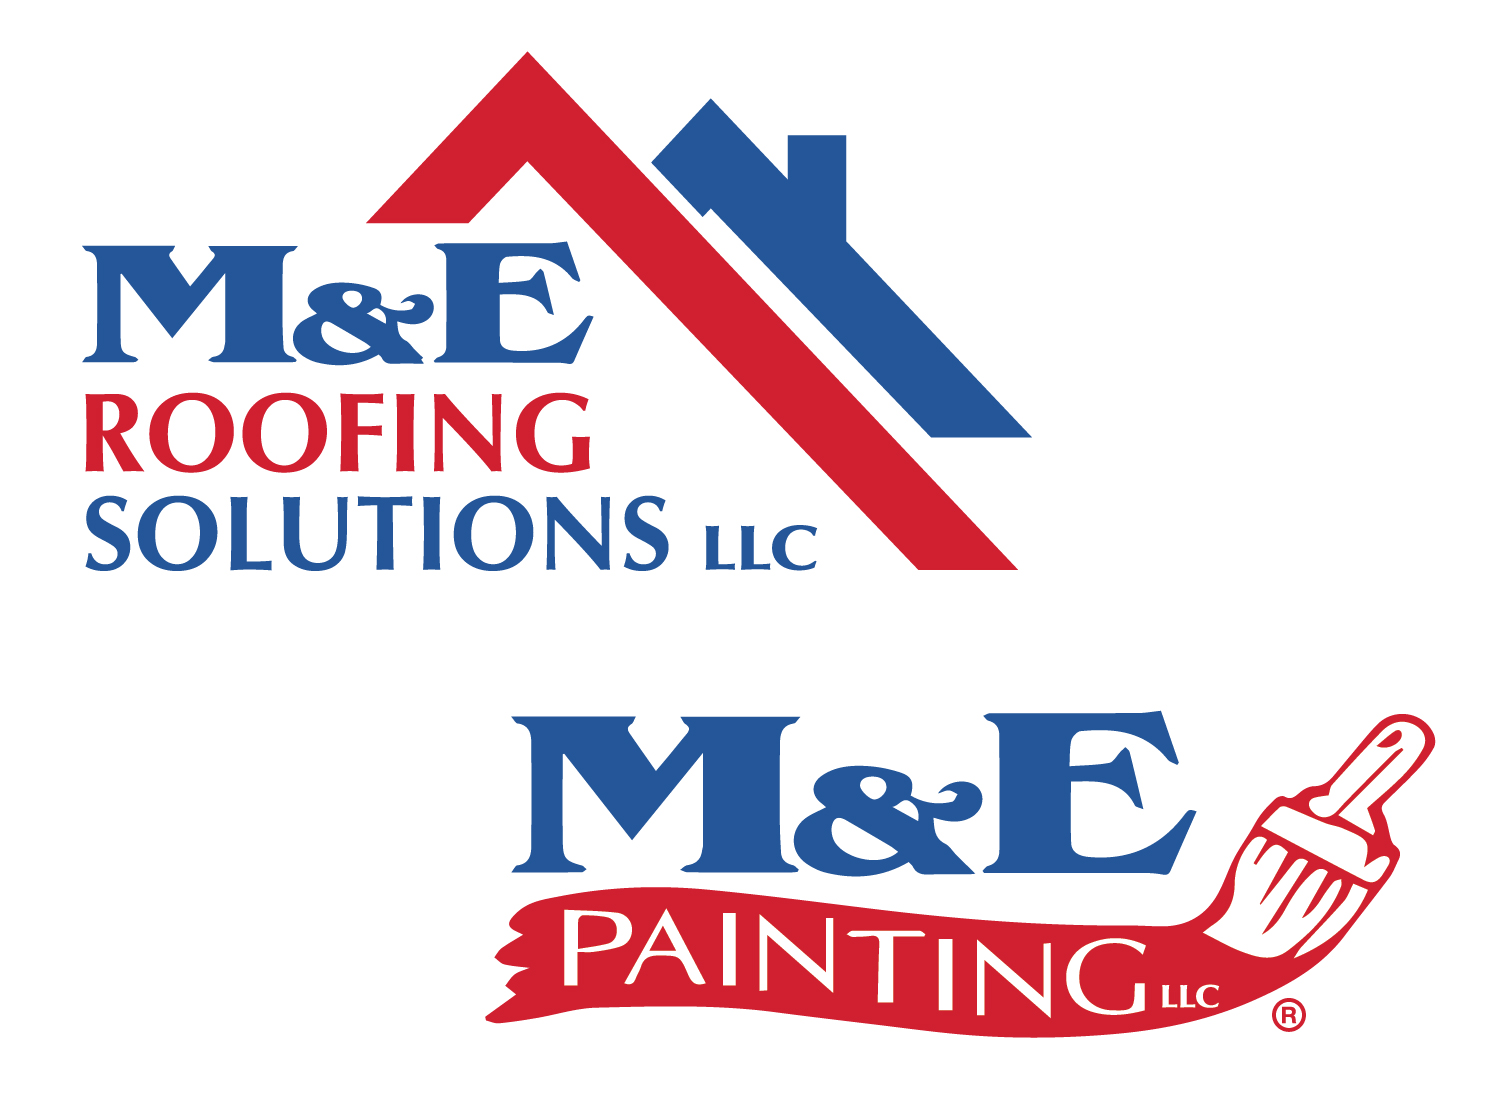 M&E Painting and Roofing